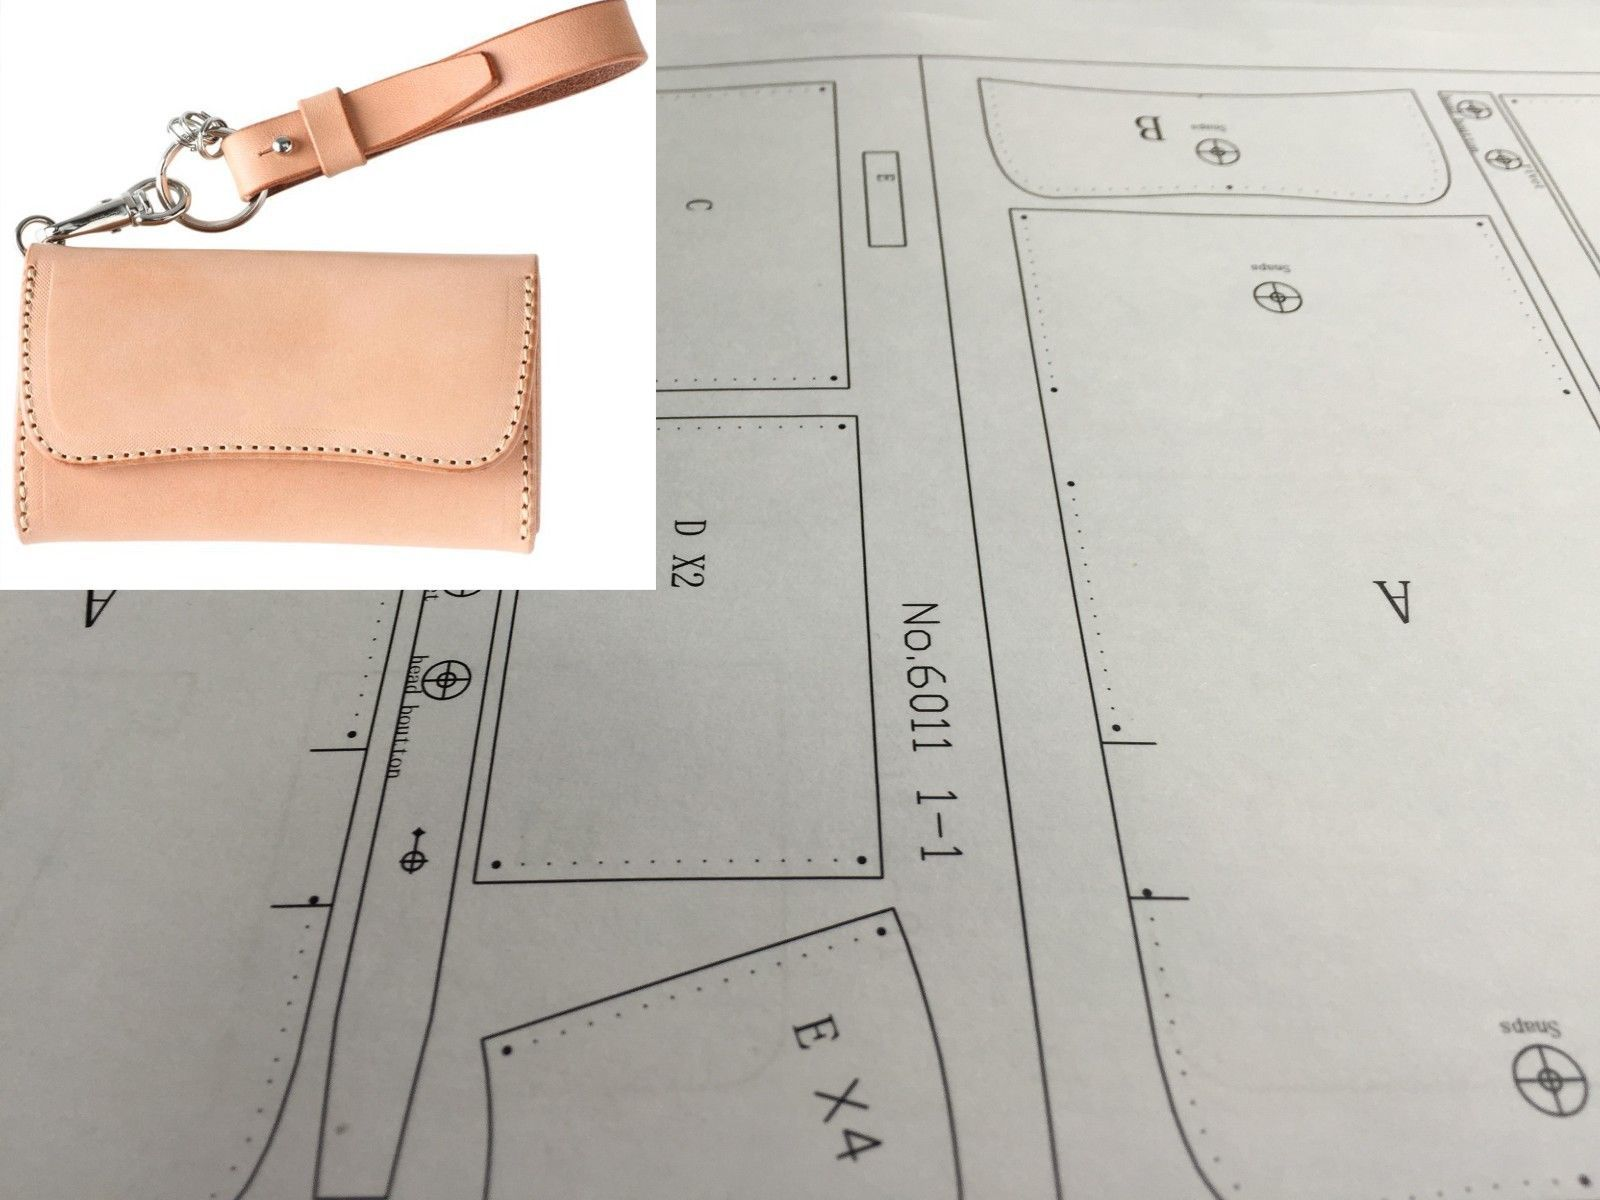 leather craft patterns diy designs short wallet paper template drawing tool 6011 ebay [ 1600 x 1200 Pixel ]